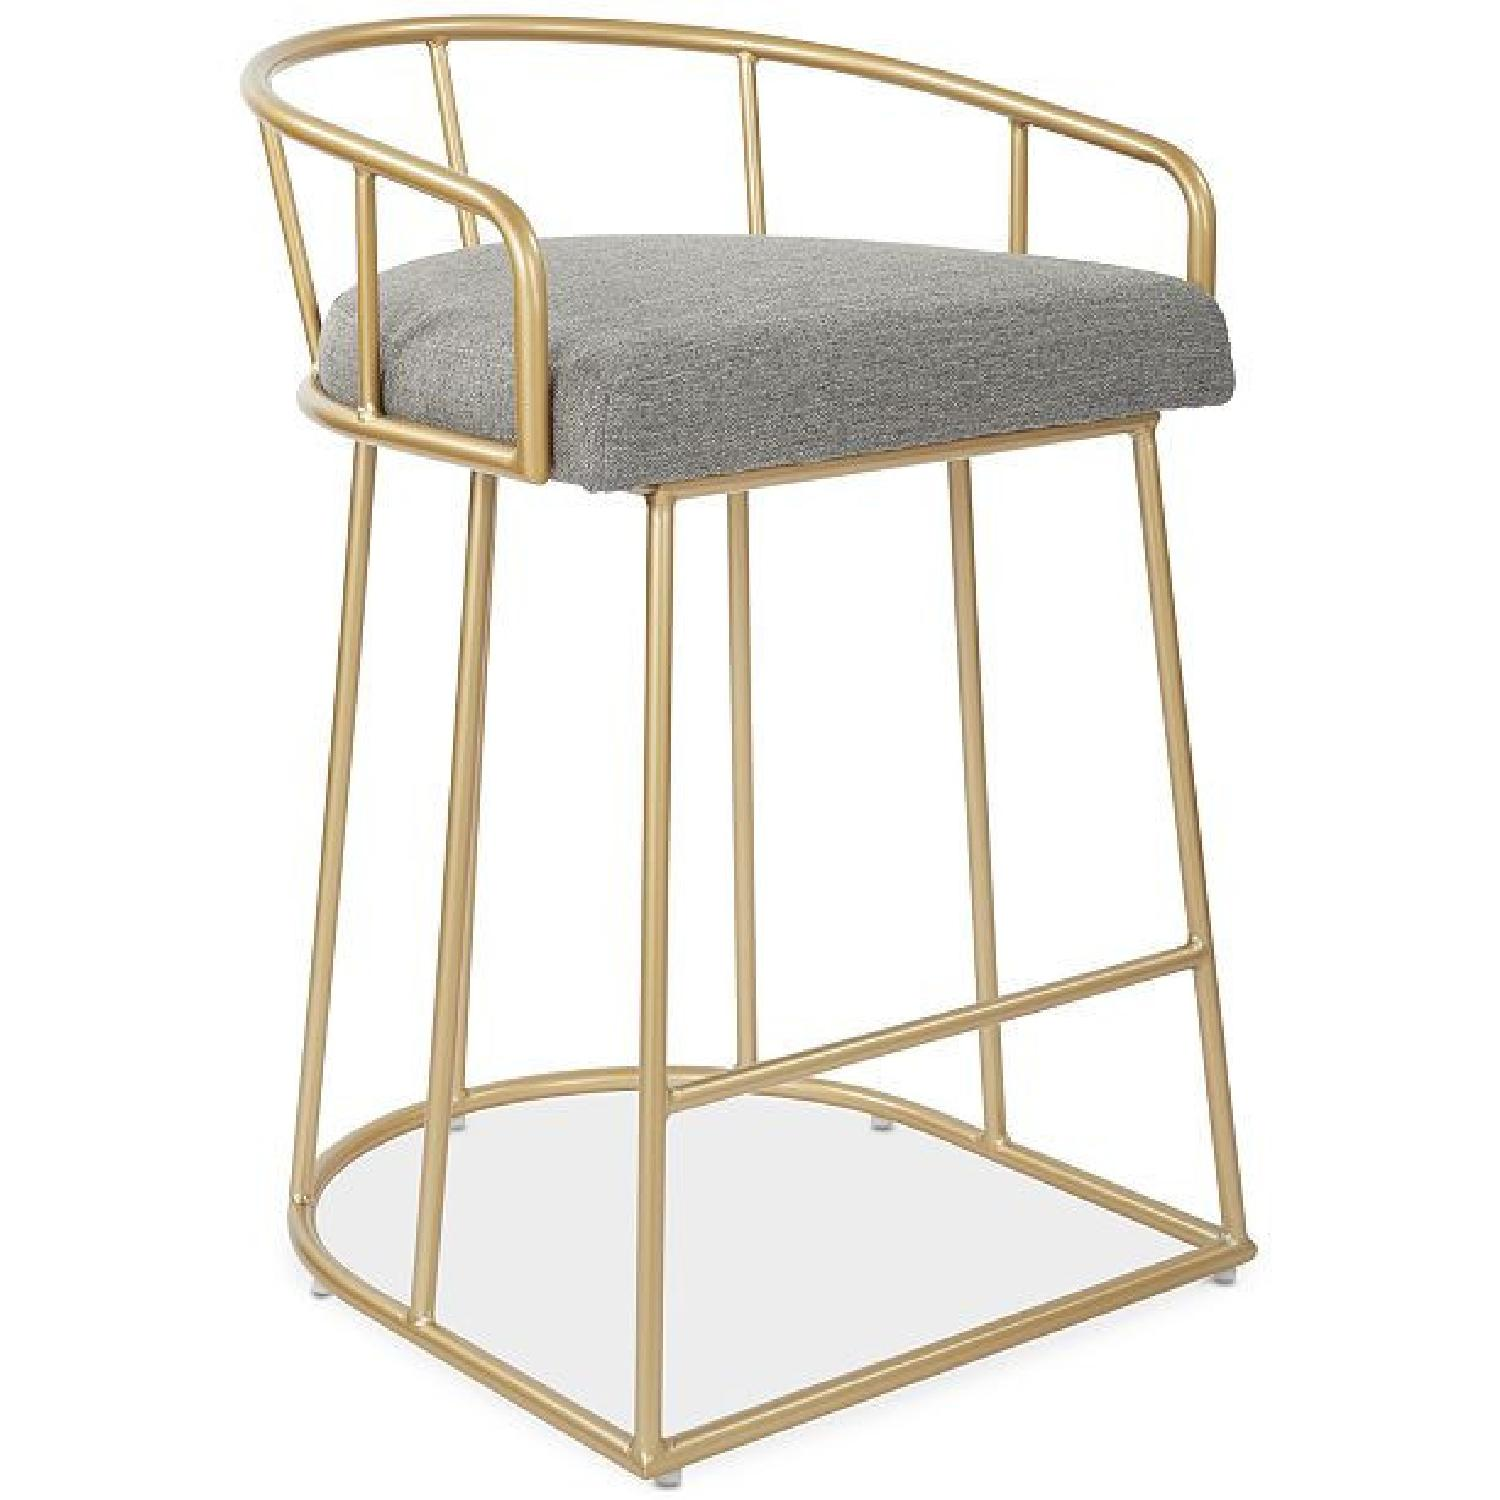 Macy's Gold Tone Upholstered Counter Stools - image-0